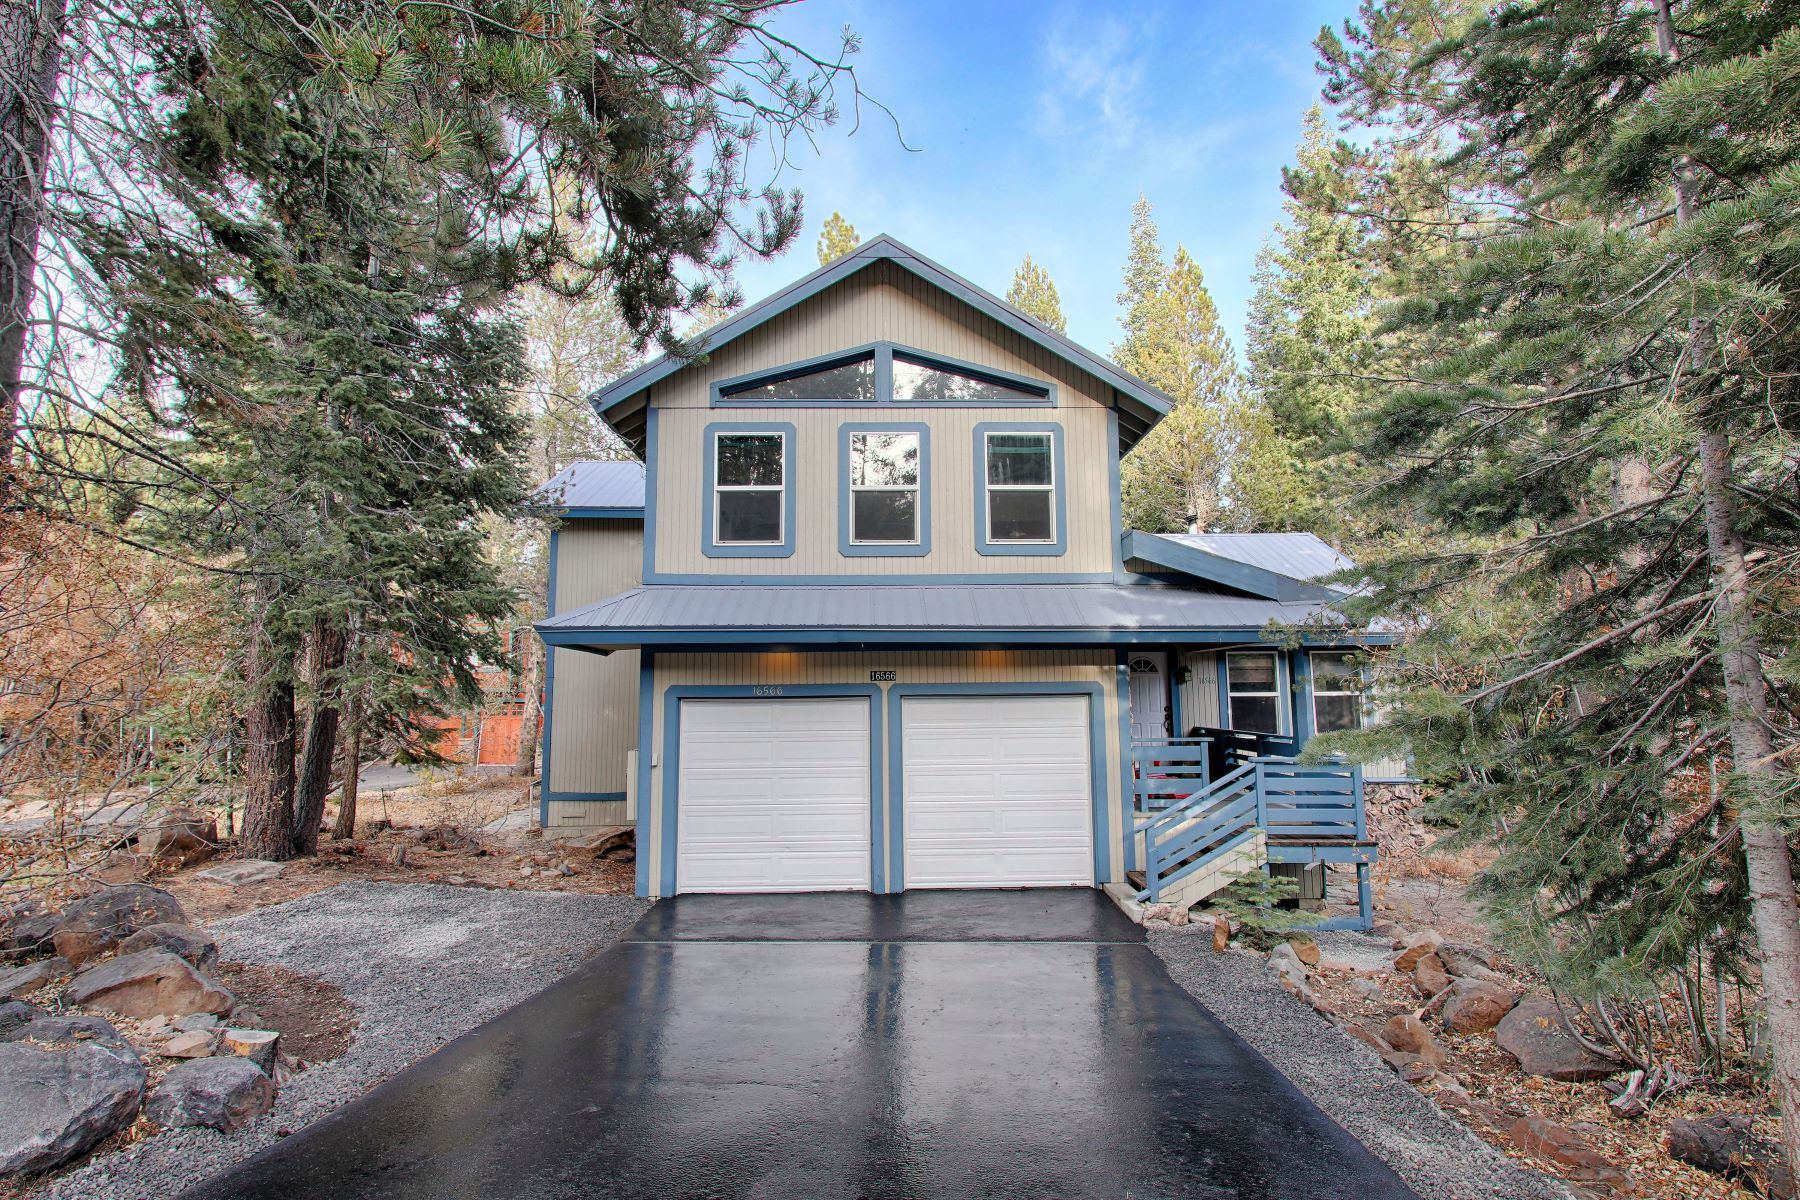 Single Family Homes for Active at 16566 Northwoods Blvd, Truckee, CA 96161 16566 Northwoods Blvd Truckee, California 96161 United States